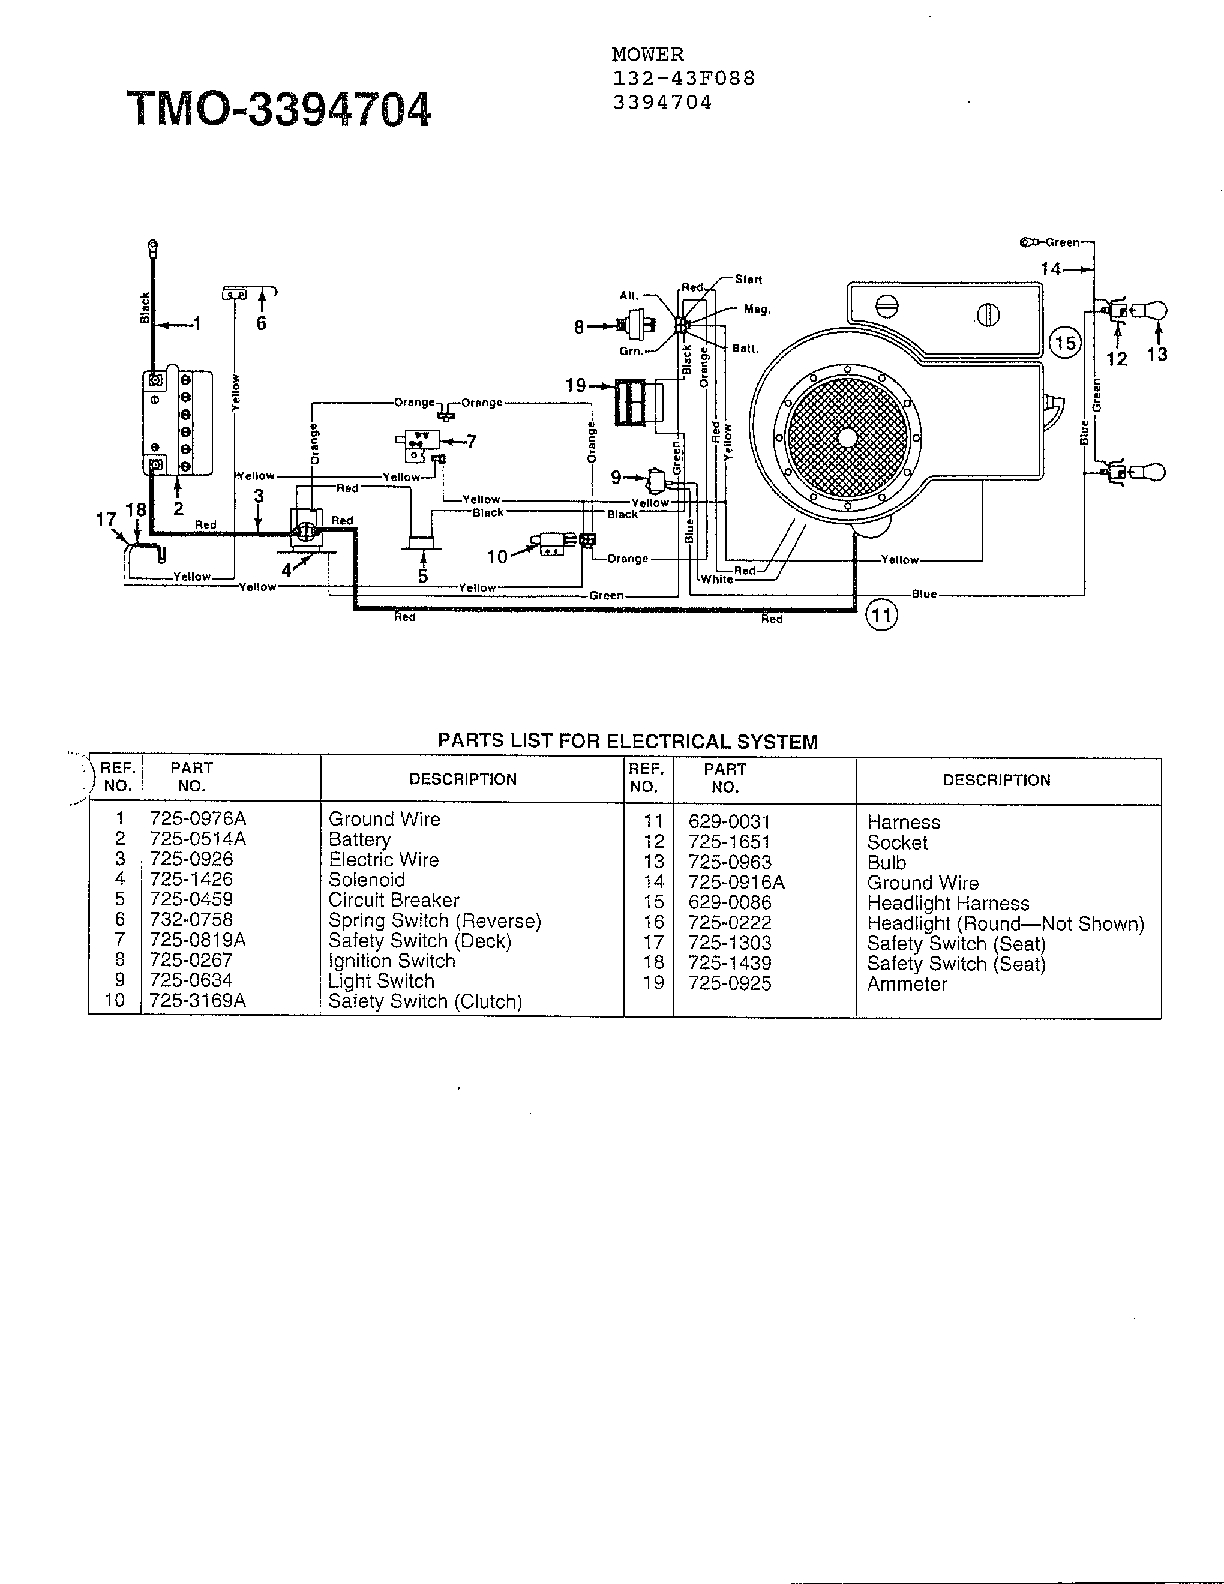 Mtd Model 132-431F088 Lawn, Tractor Genuine Parts - Mtd Riding Lawn Mower Wiring Diagram